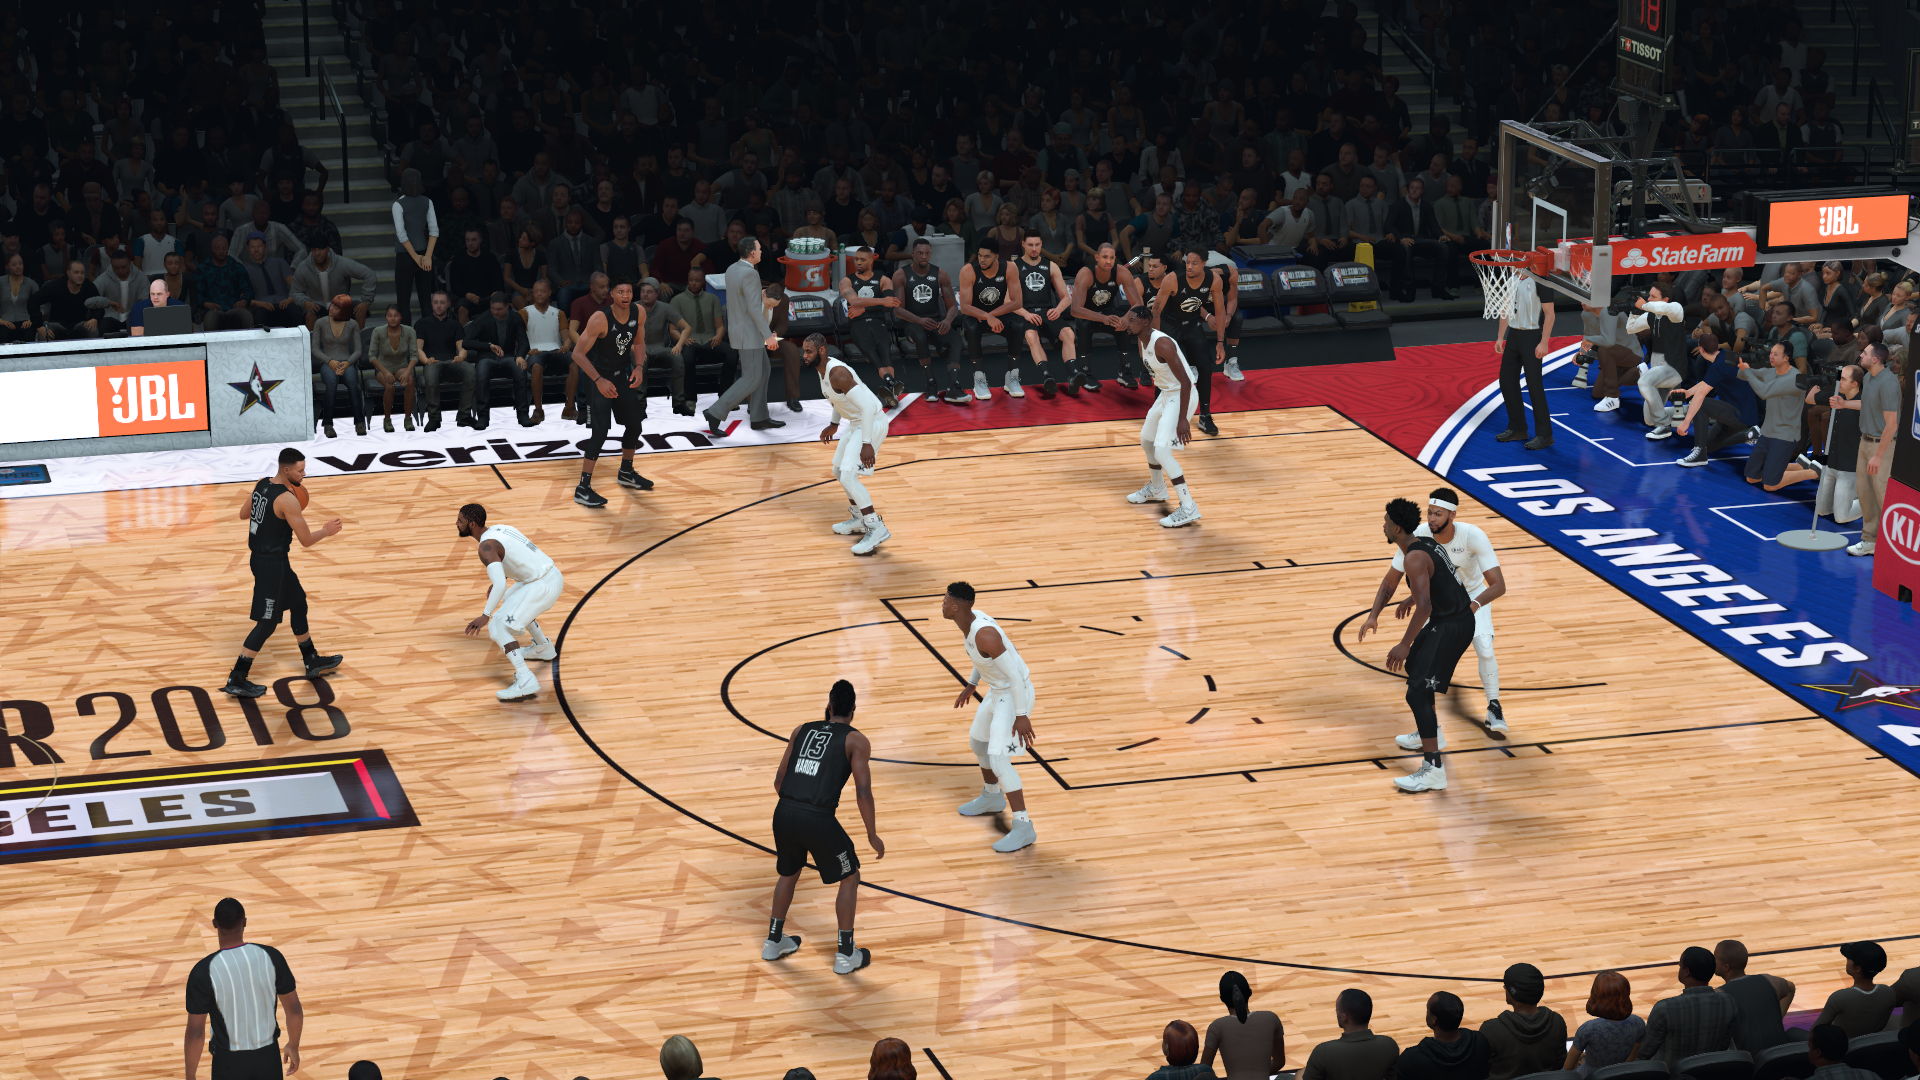 2018 NBA All-Star Game Courts